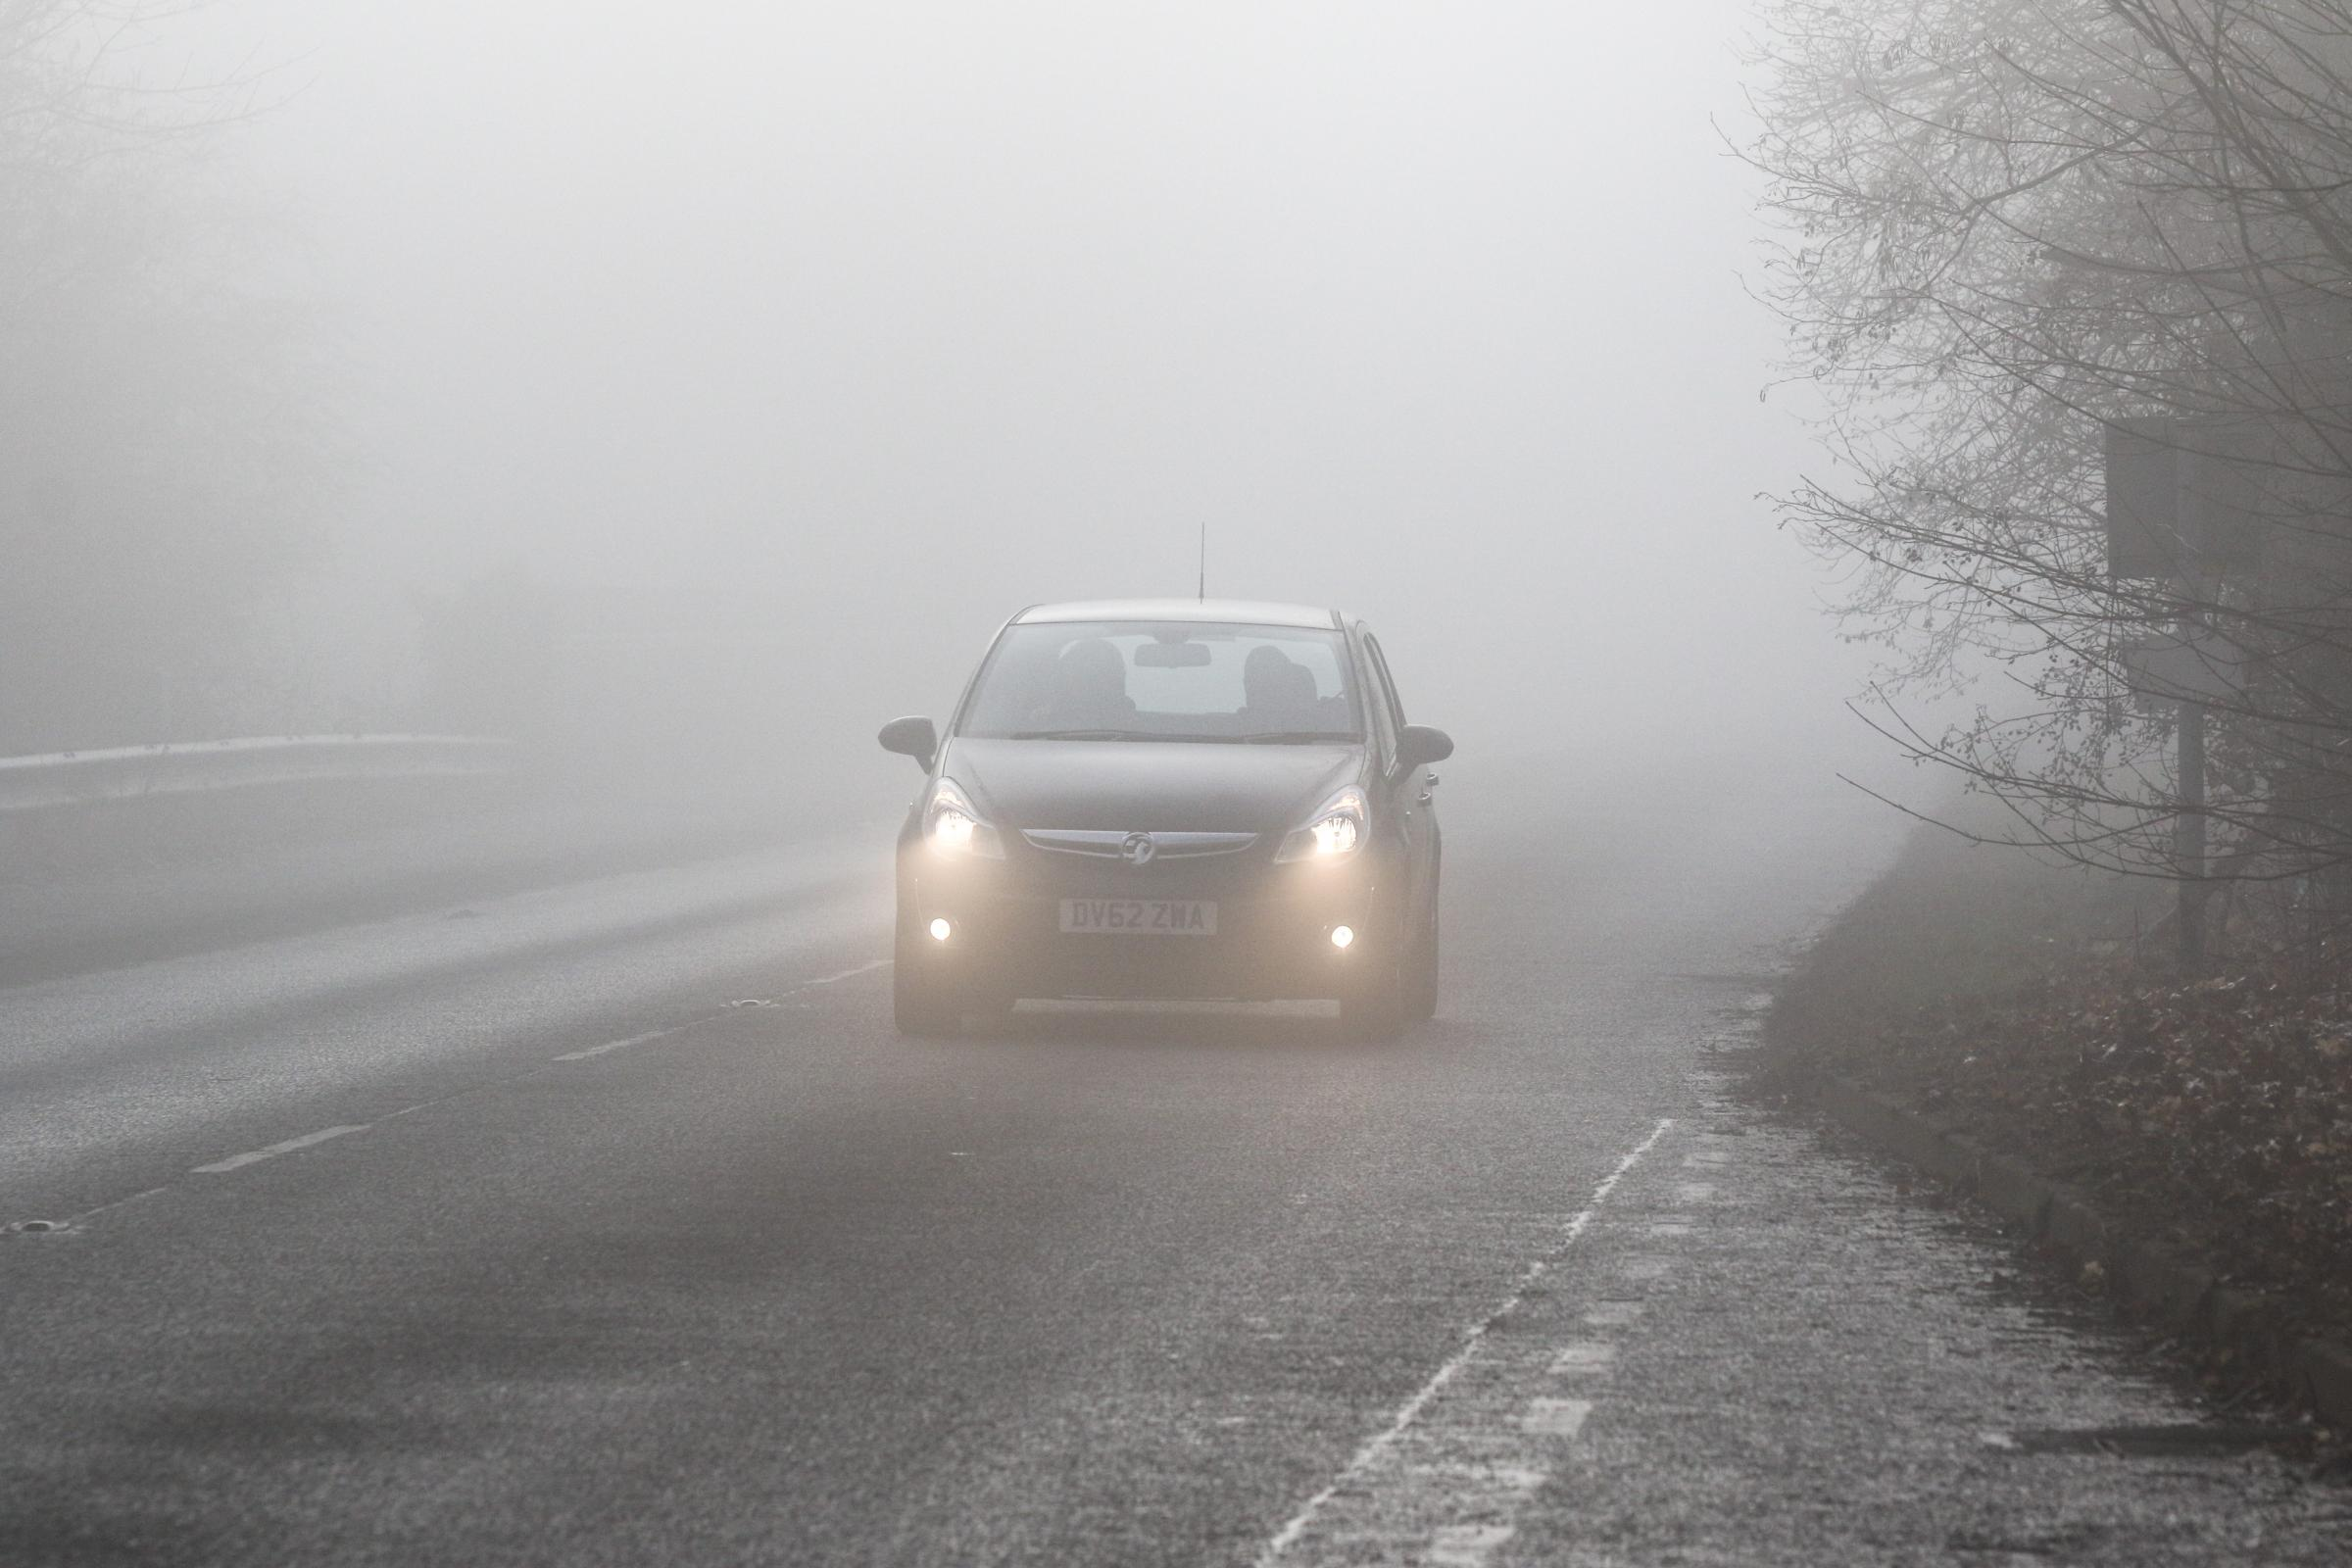 Fog warning issued by Met Office